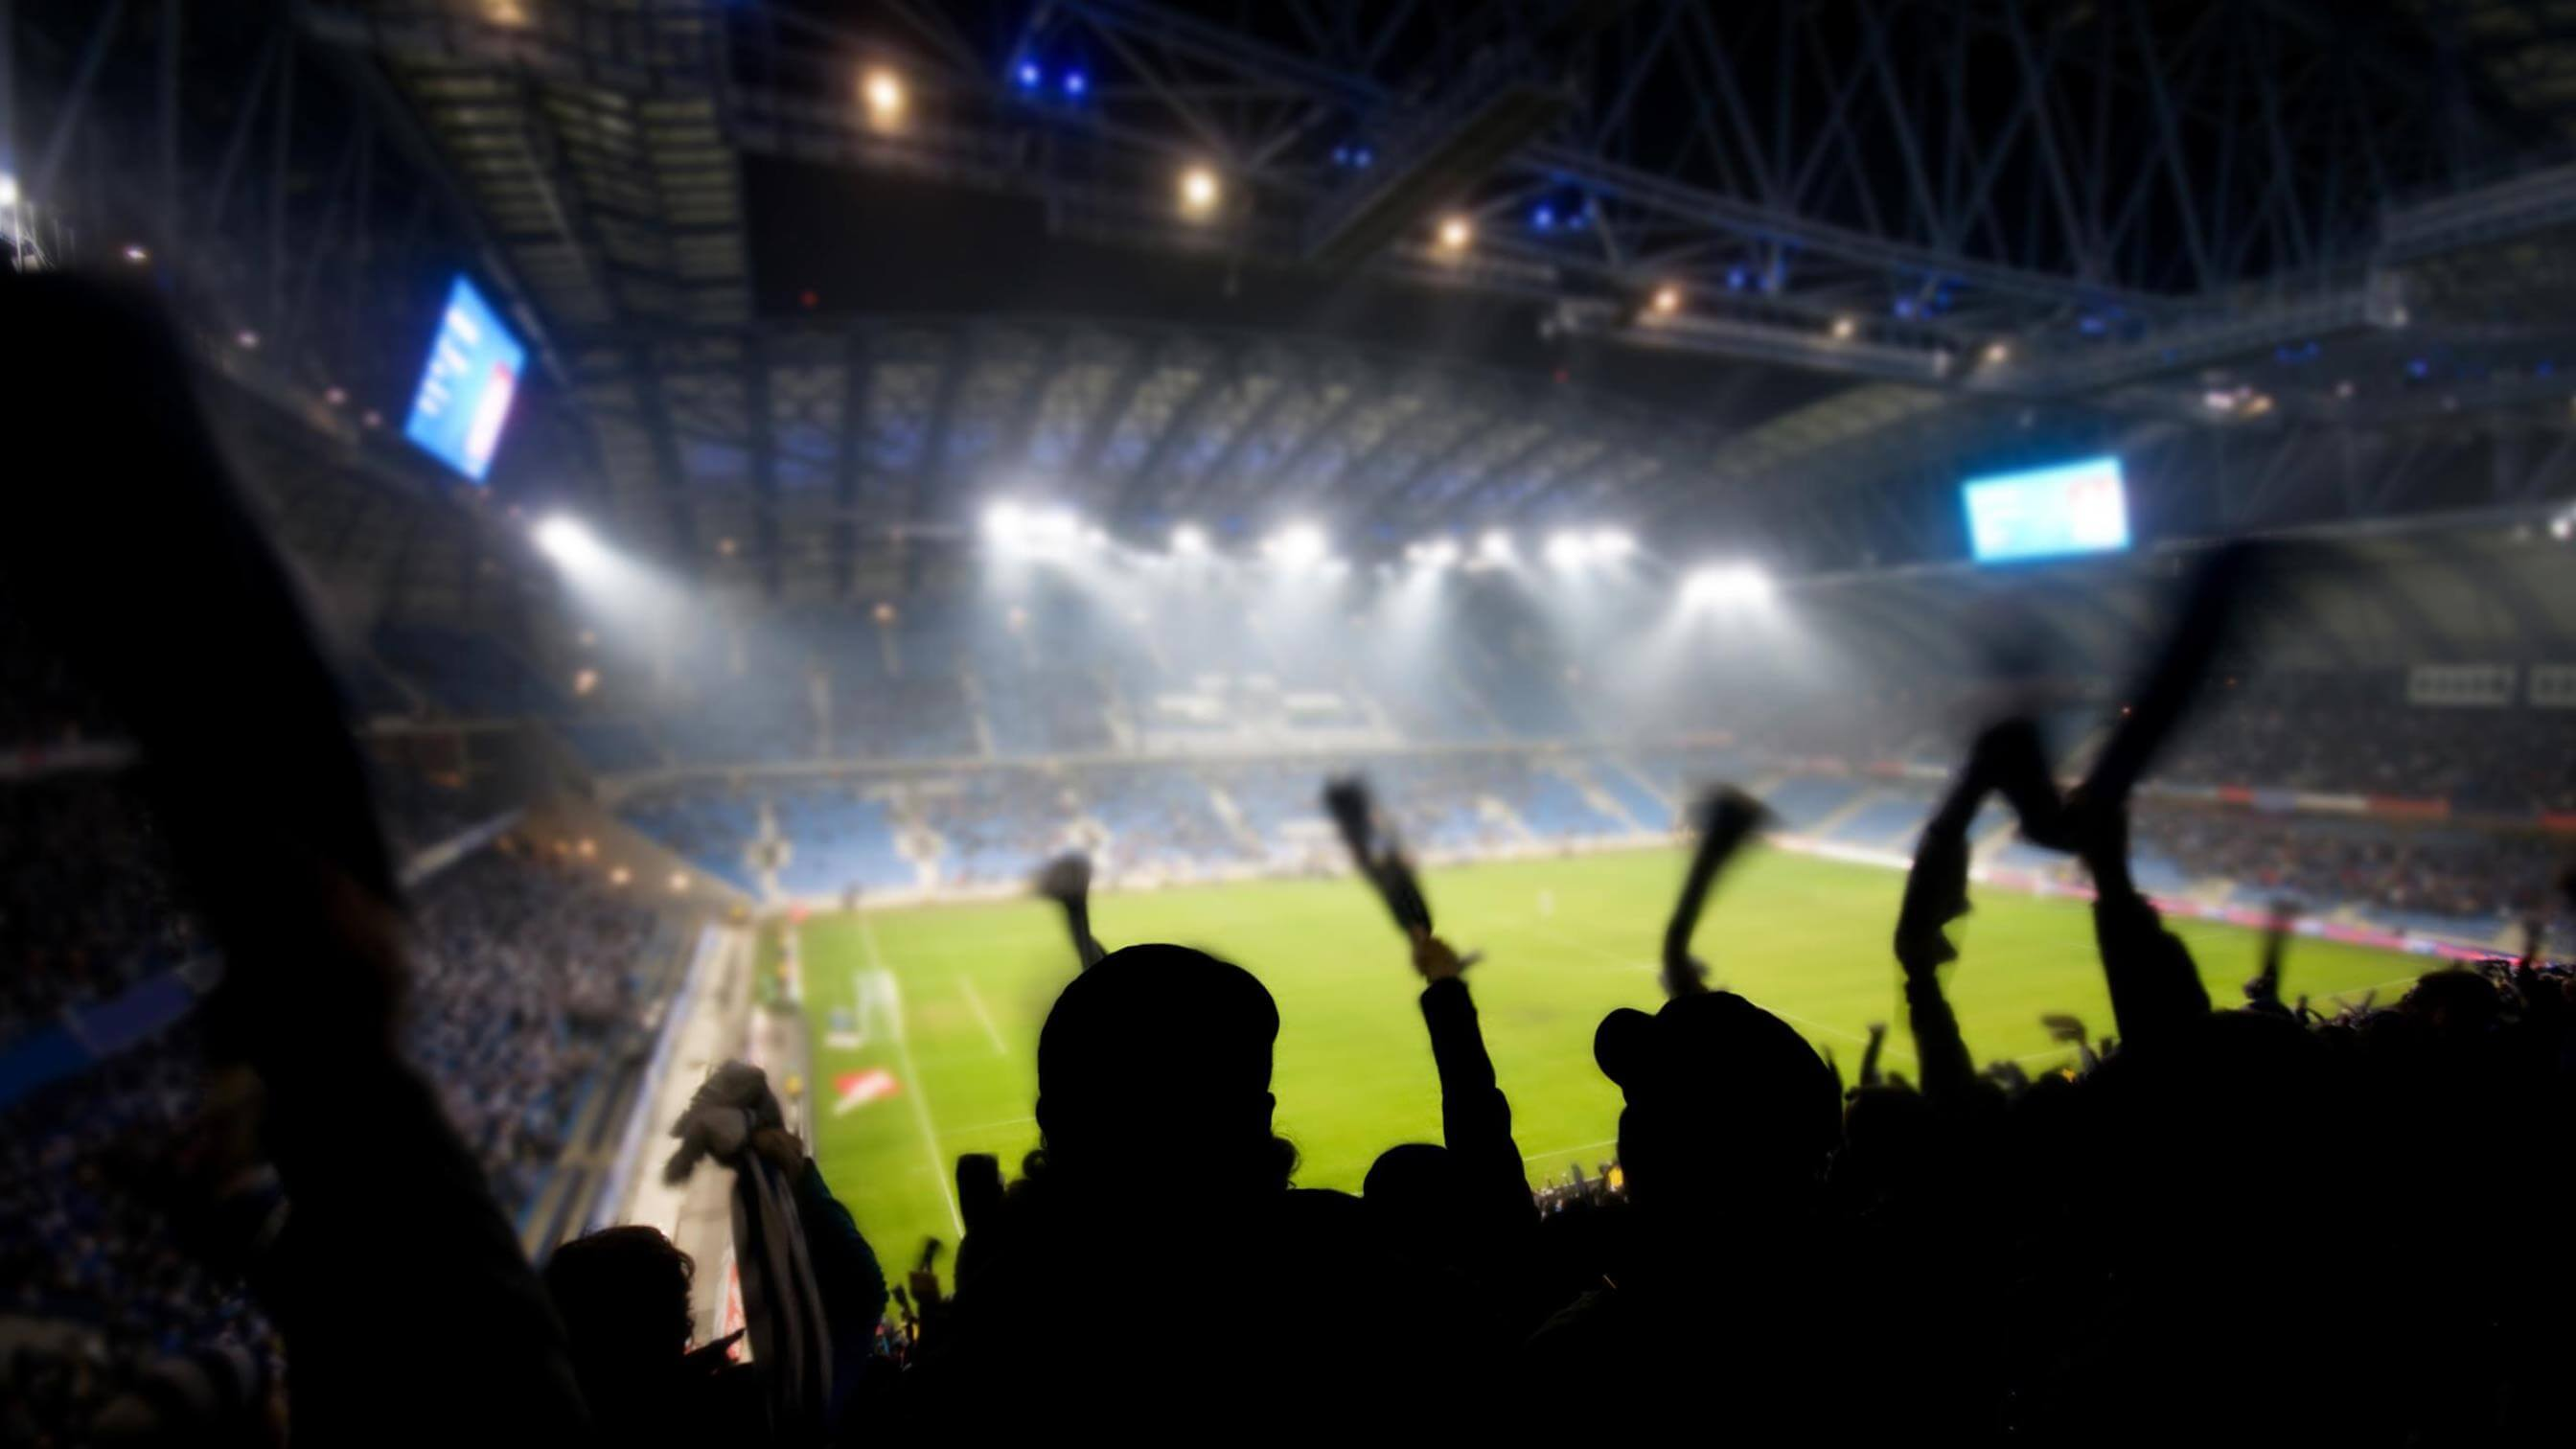 Soccer fans cheering at night game in Brazil